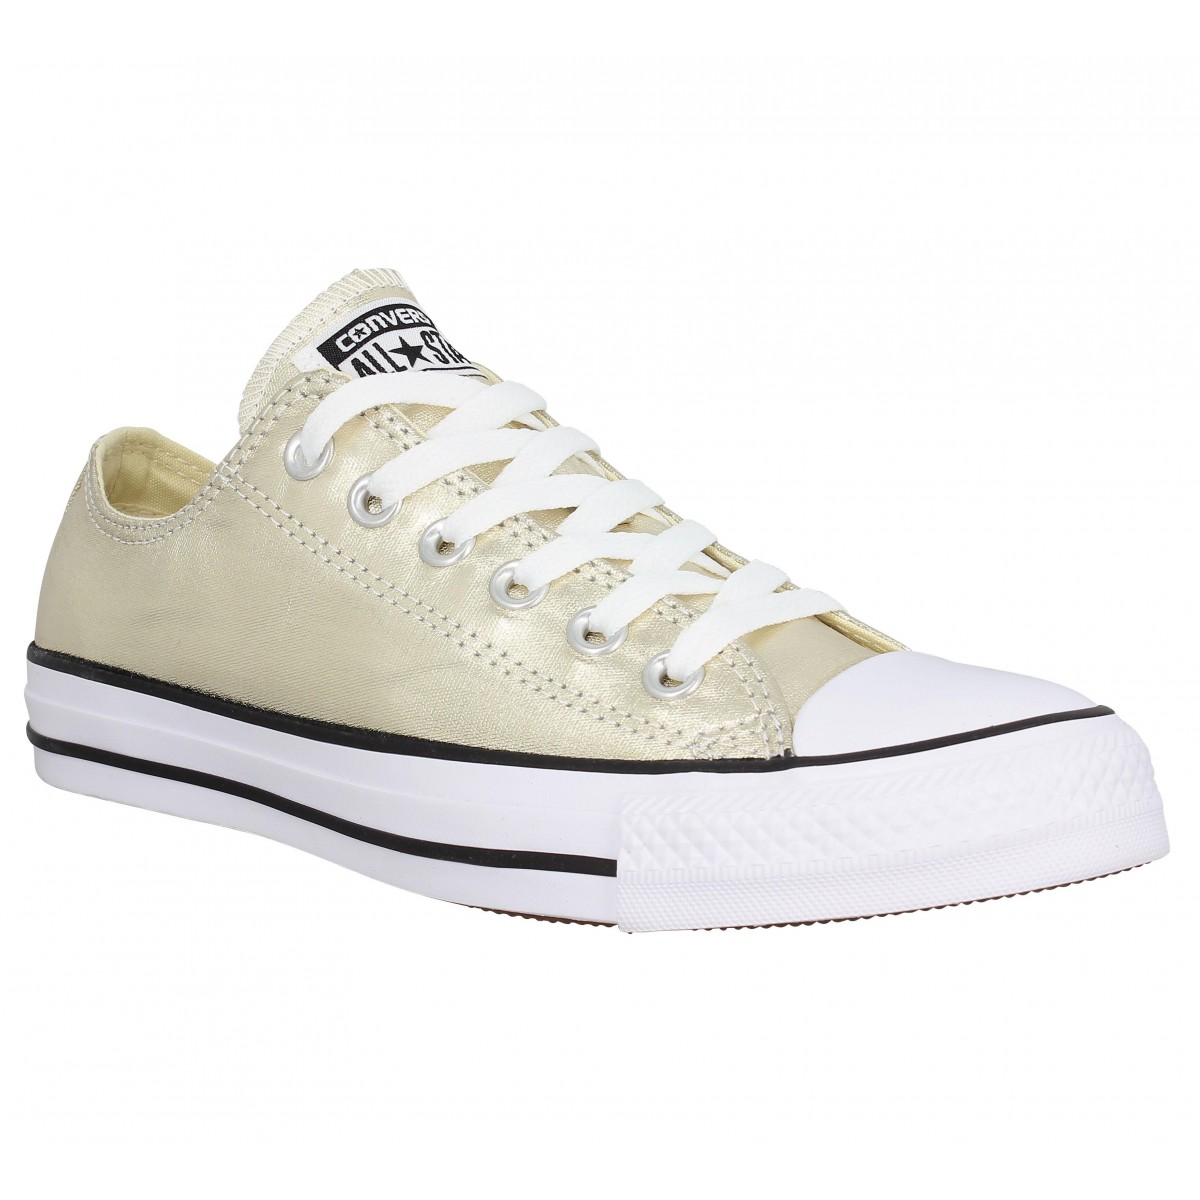 Baskets CONVERSE Chuck Taylor All Star toile New Gold